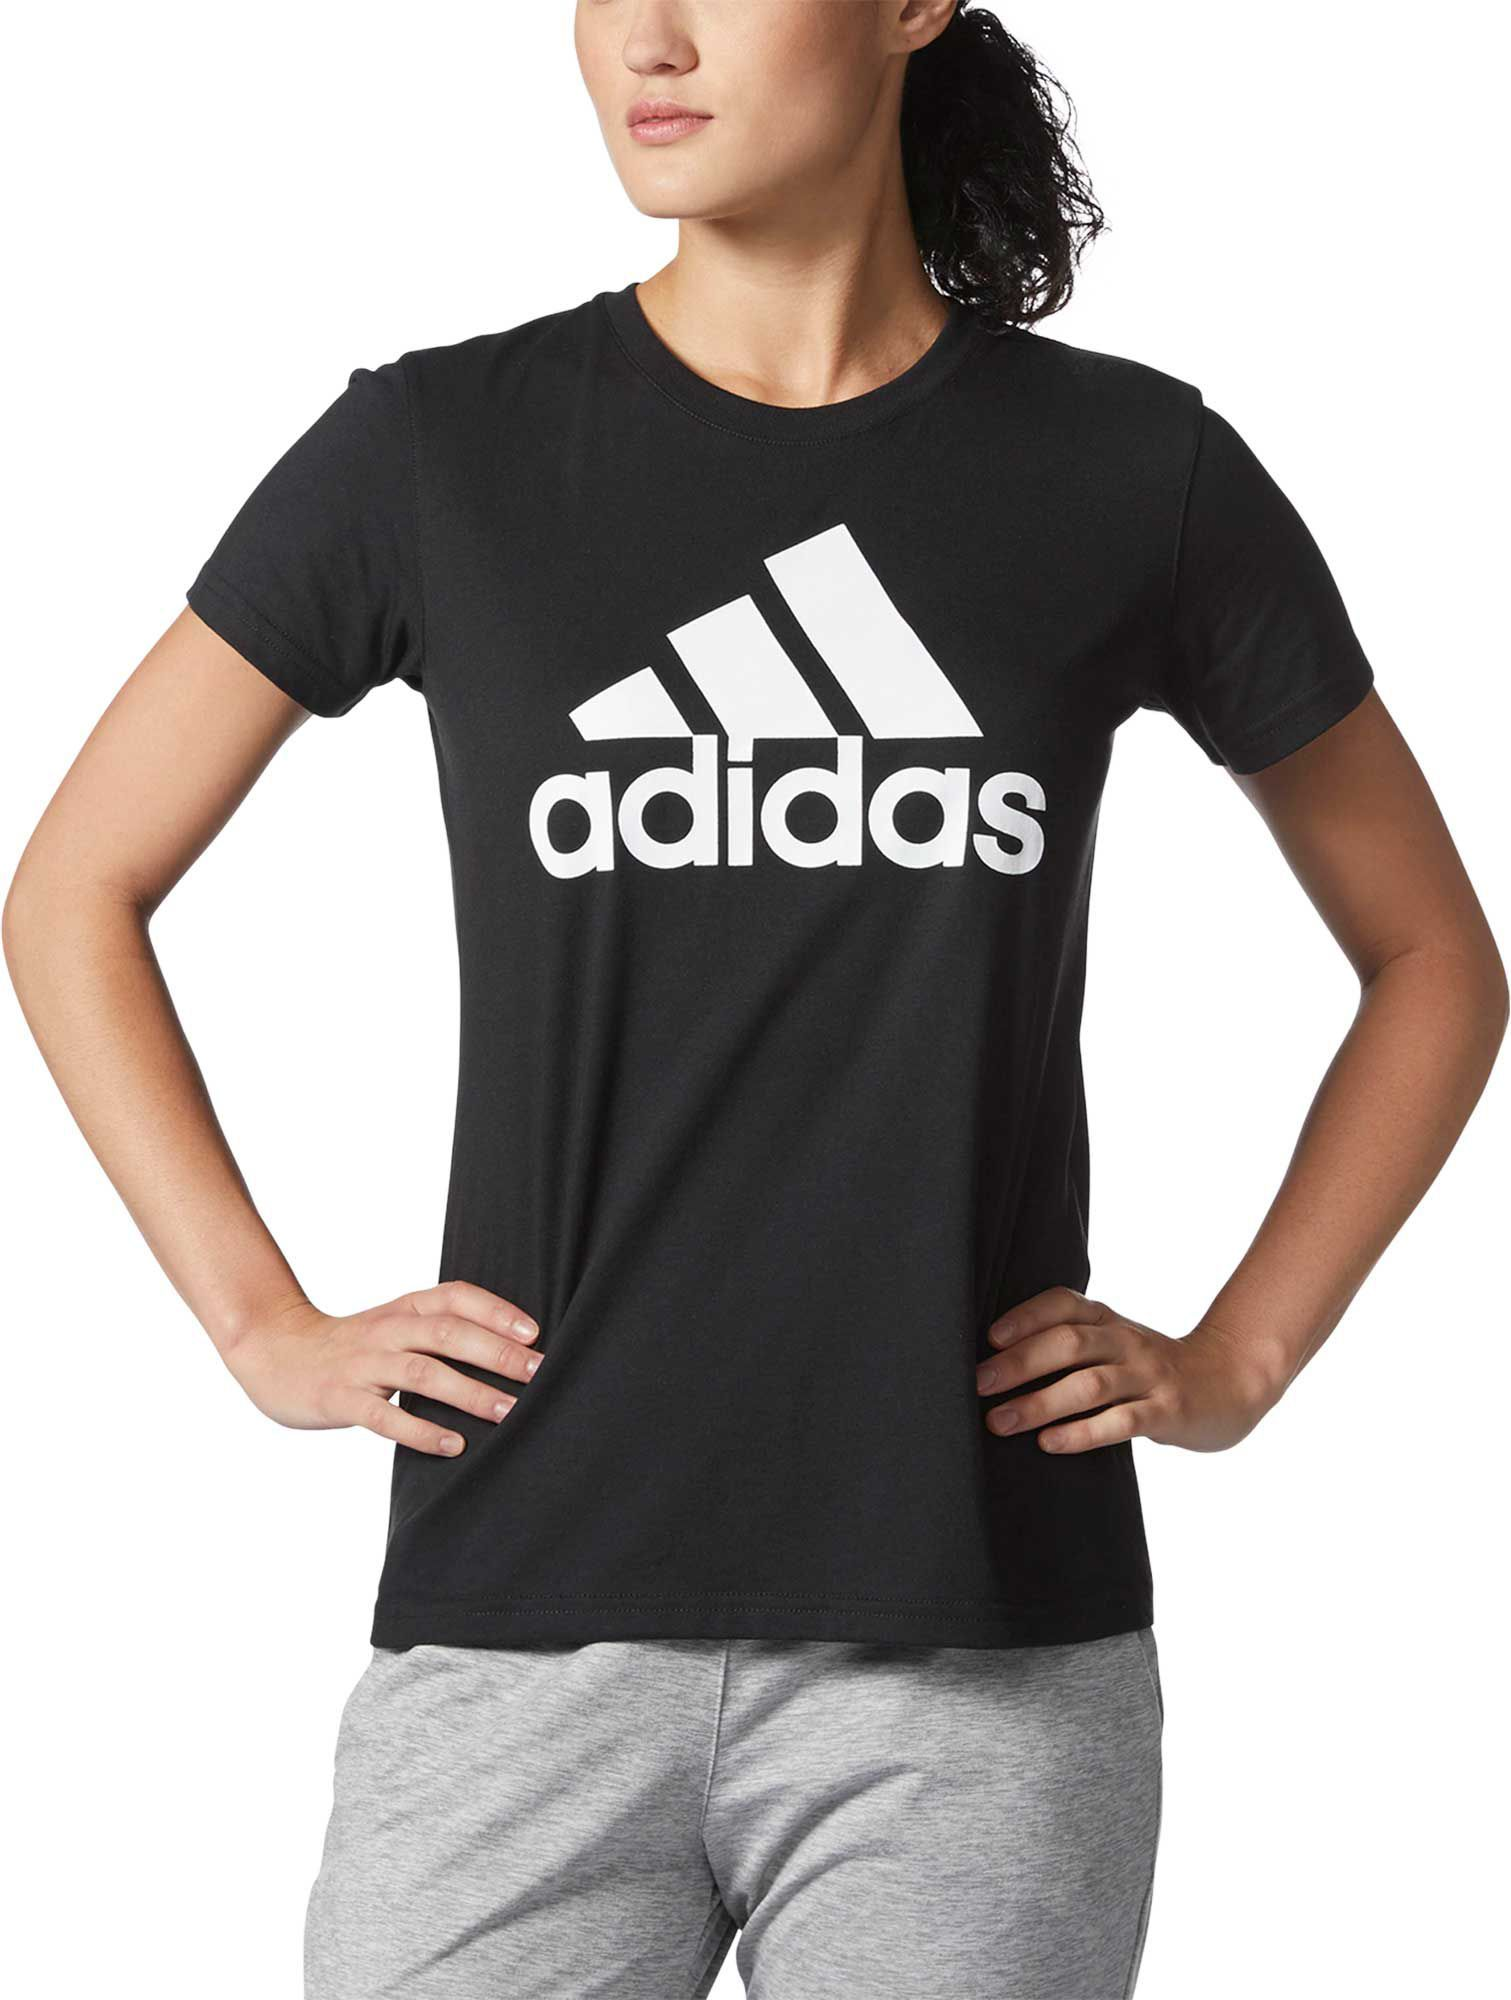 6b056dfcf09a adidas Women's Badge Of Sport Classic T-Shirt   Products   Adidas ...